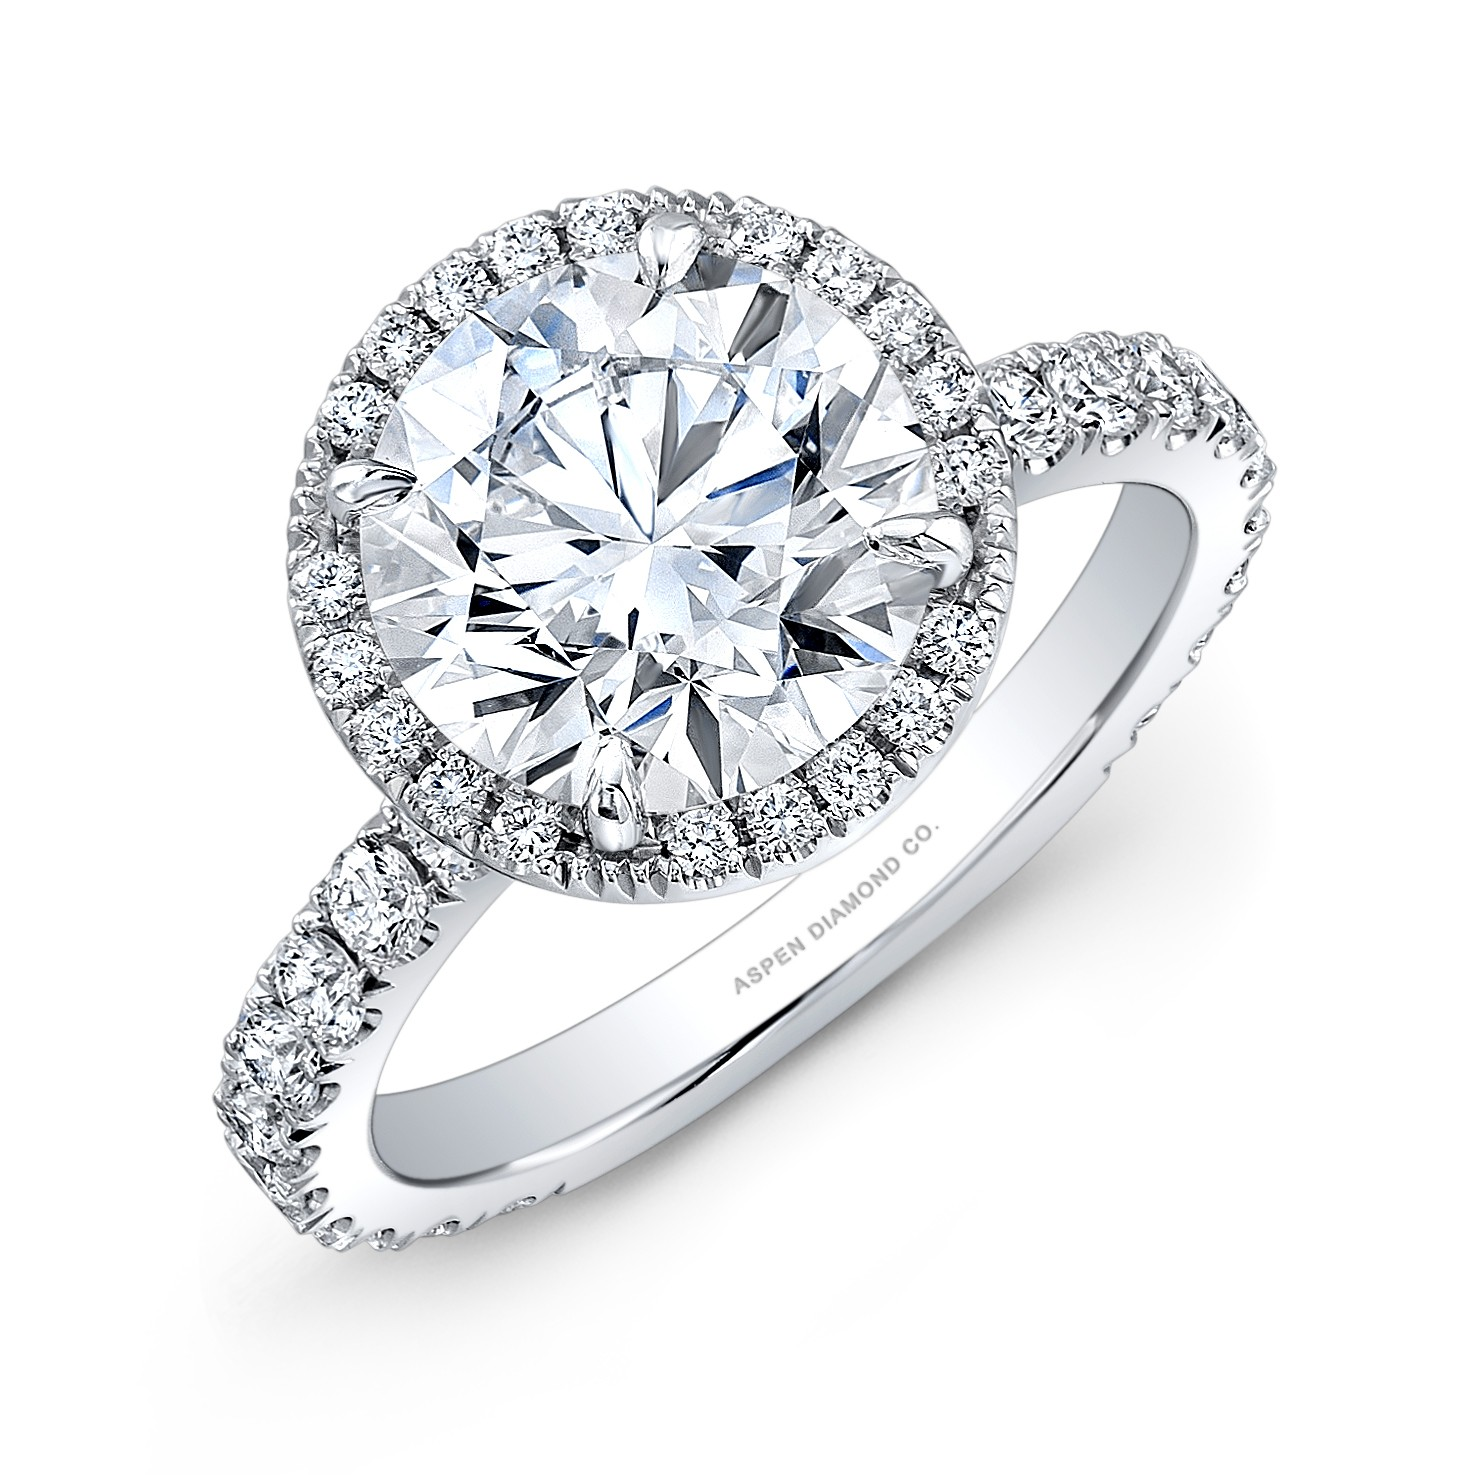 Round Brilliant Diamond Halo Engagement Ring in Platinum